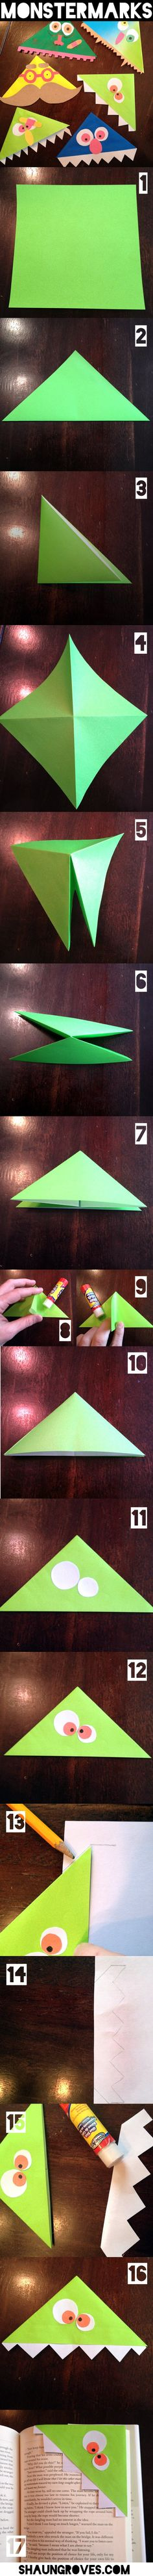 Monster Bookmarks For Kidscraft diy craft crafts kids crafts paper crafts learning childrens crafts diy crafts for kids Easy Crafts For Kids, Projects For Kids, Diy For Kids, Fun Crafts, Craft Projects, Paper Crafts, Freetime Activities, Craft Activities, Monster Bookmark